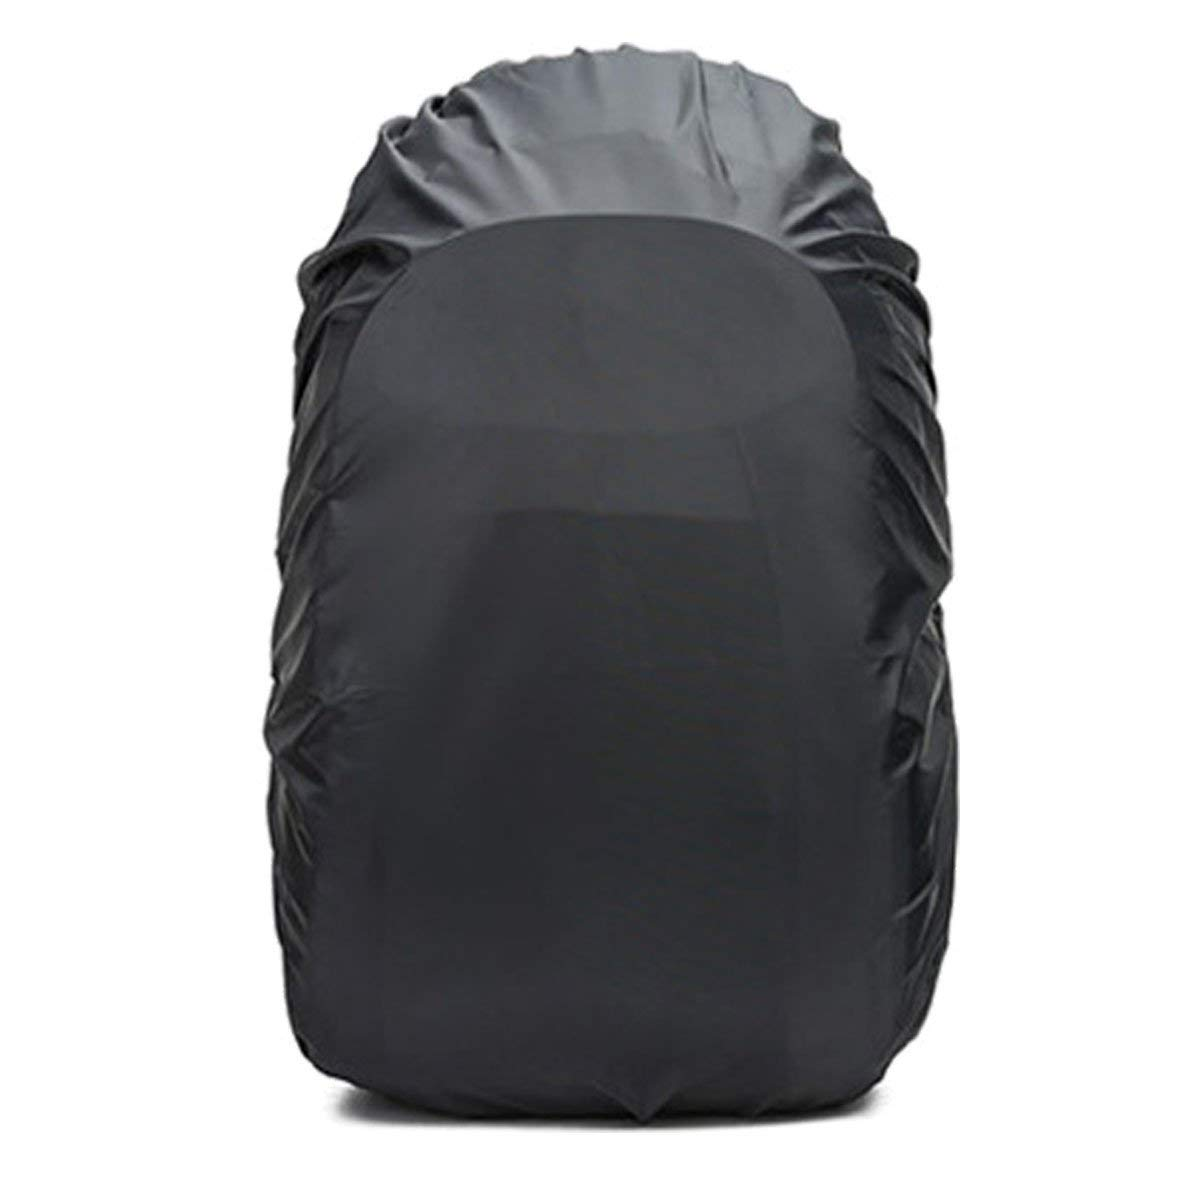 Frelaxy Waterproof Backpack Rain Cover (15-90L), Upgraded Vertical Buckle Strap & Silver Coated, Rainproof Storage Pouch Included, Perfect for Hiking (Black, M (for 25L-35L Backpack)) by Frelaxy (Image #2)